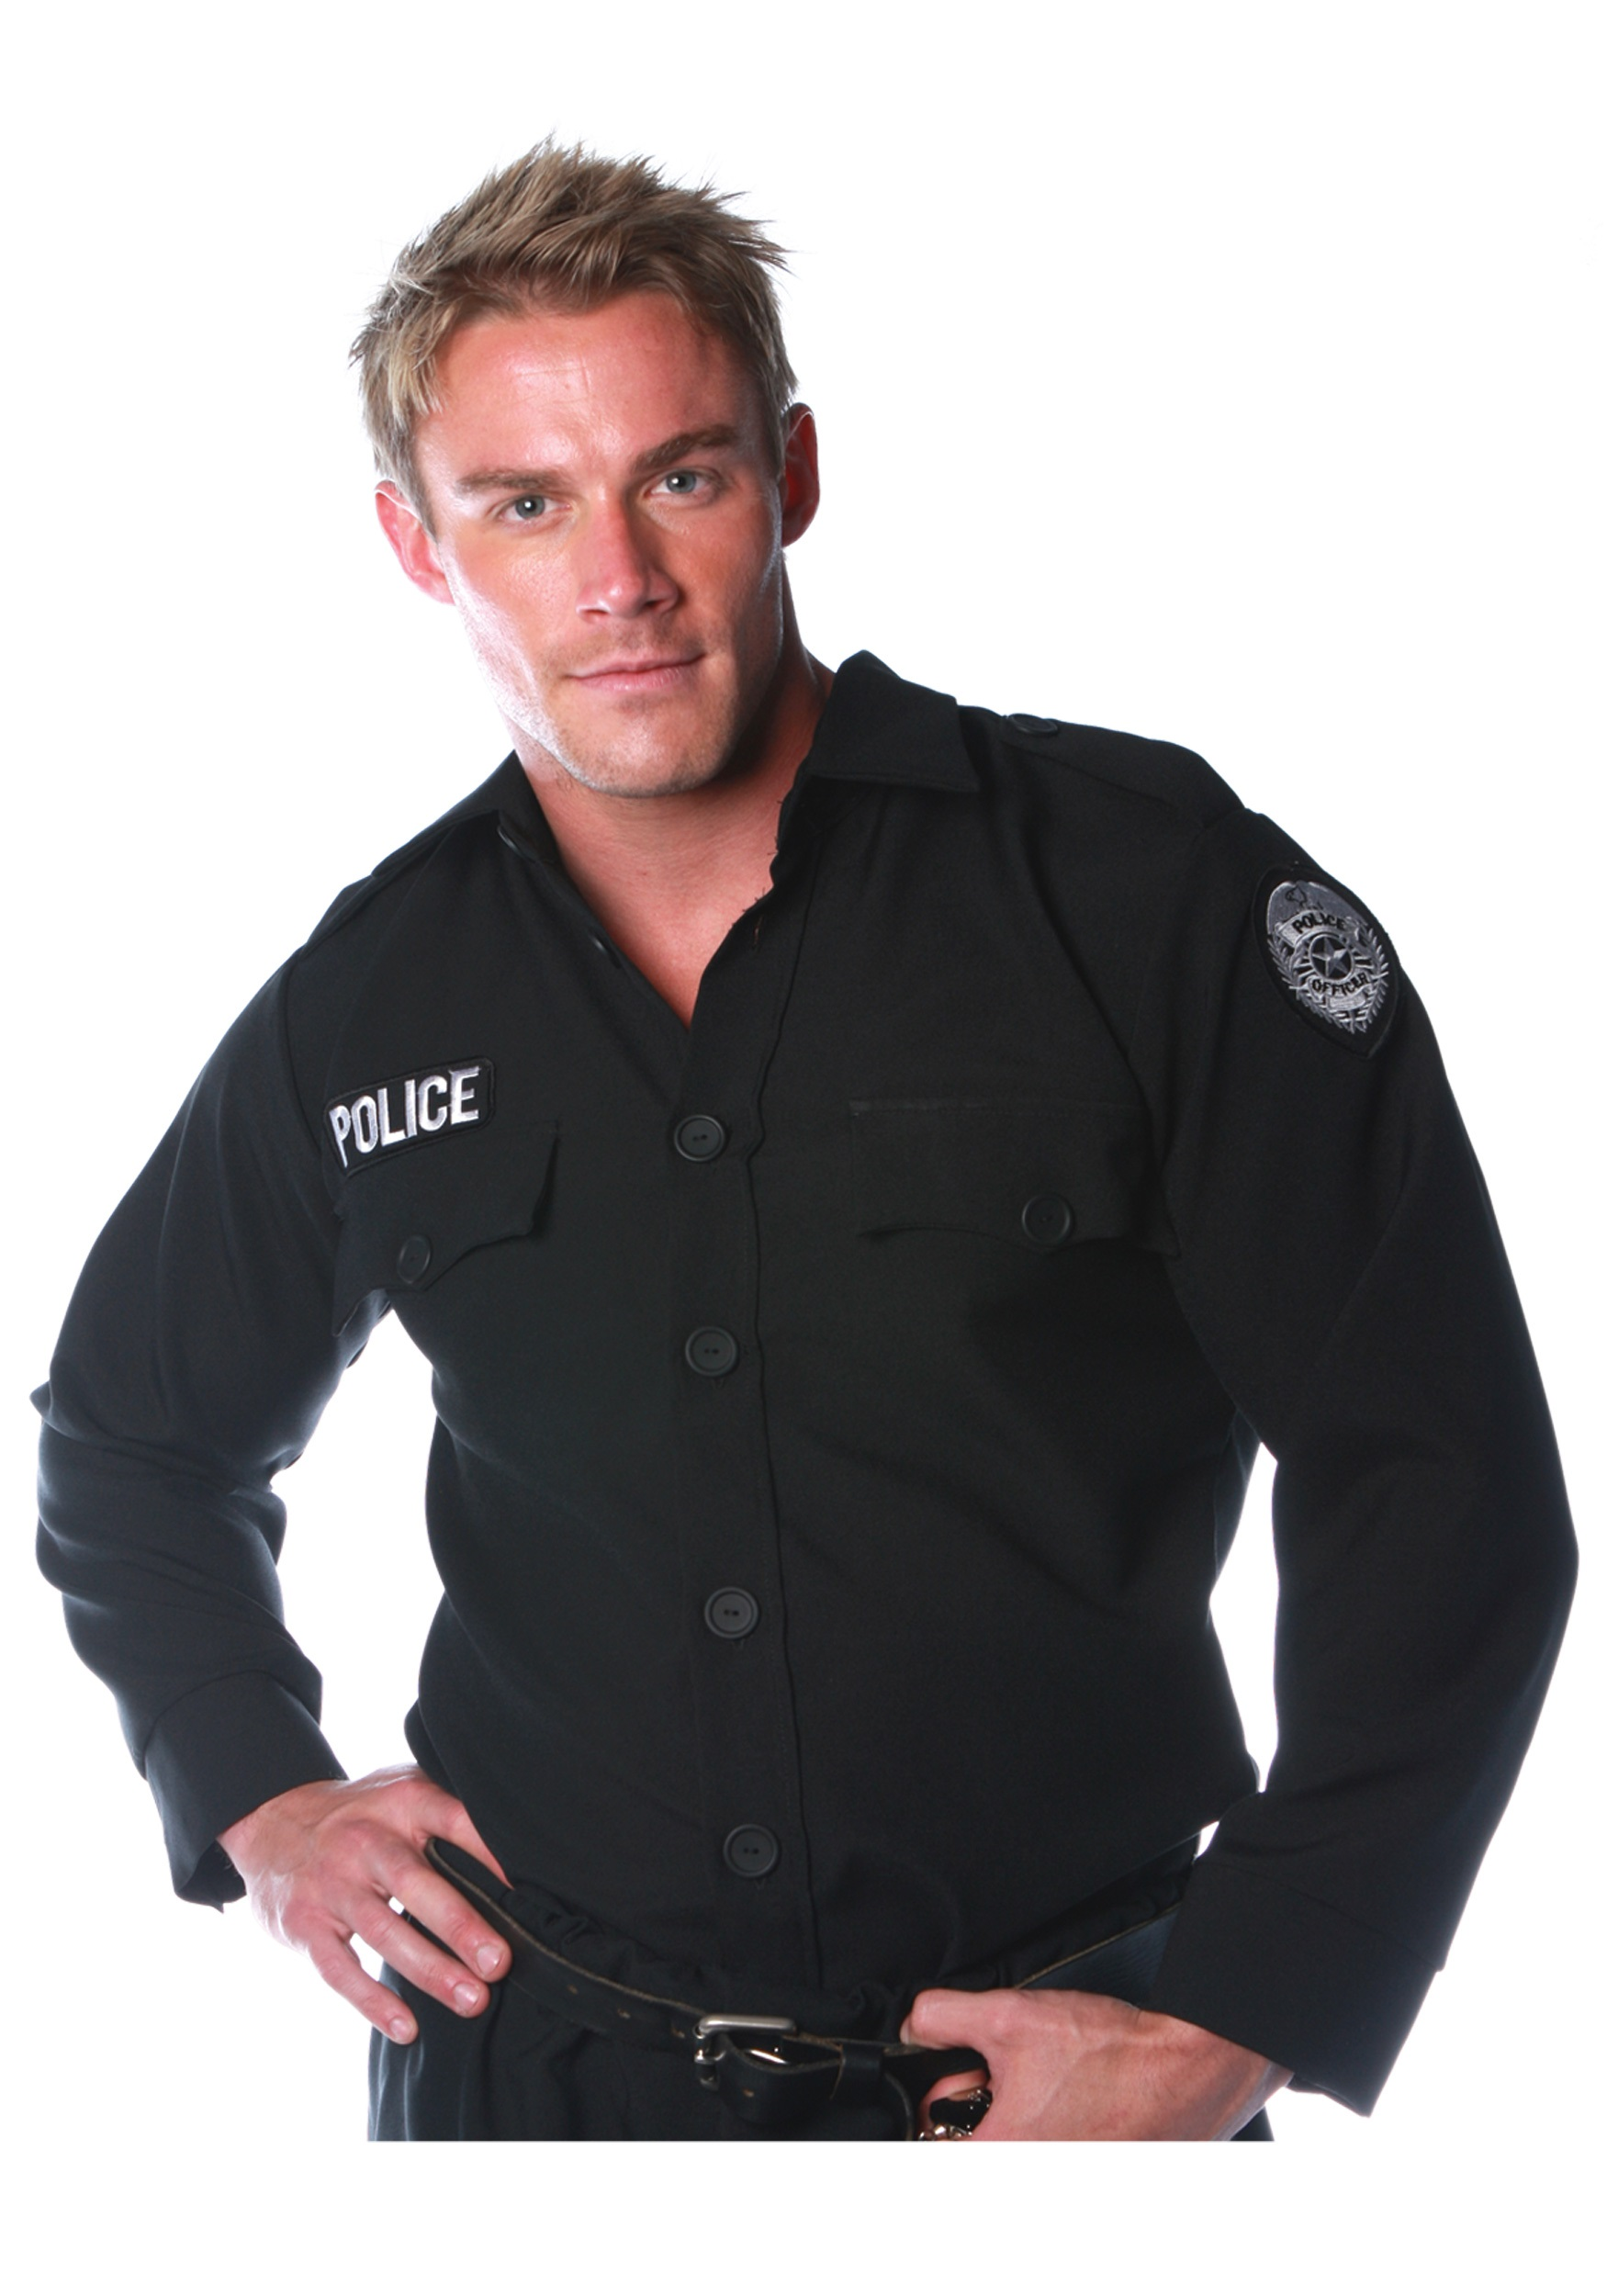 Police Costume Shirt  sc 1 st  Halloween Costume & Police Costume Shirt - Adult Cop u0026 Police Officer Halloween Costumes